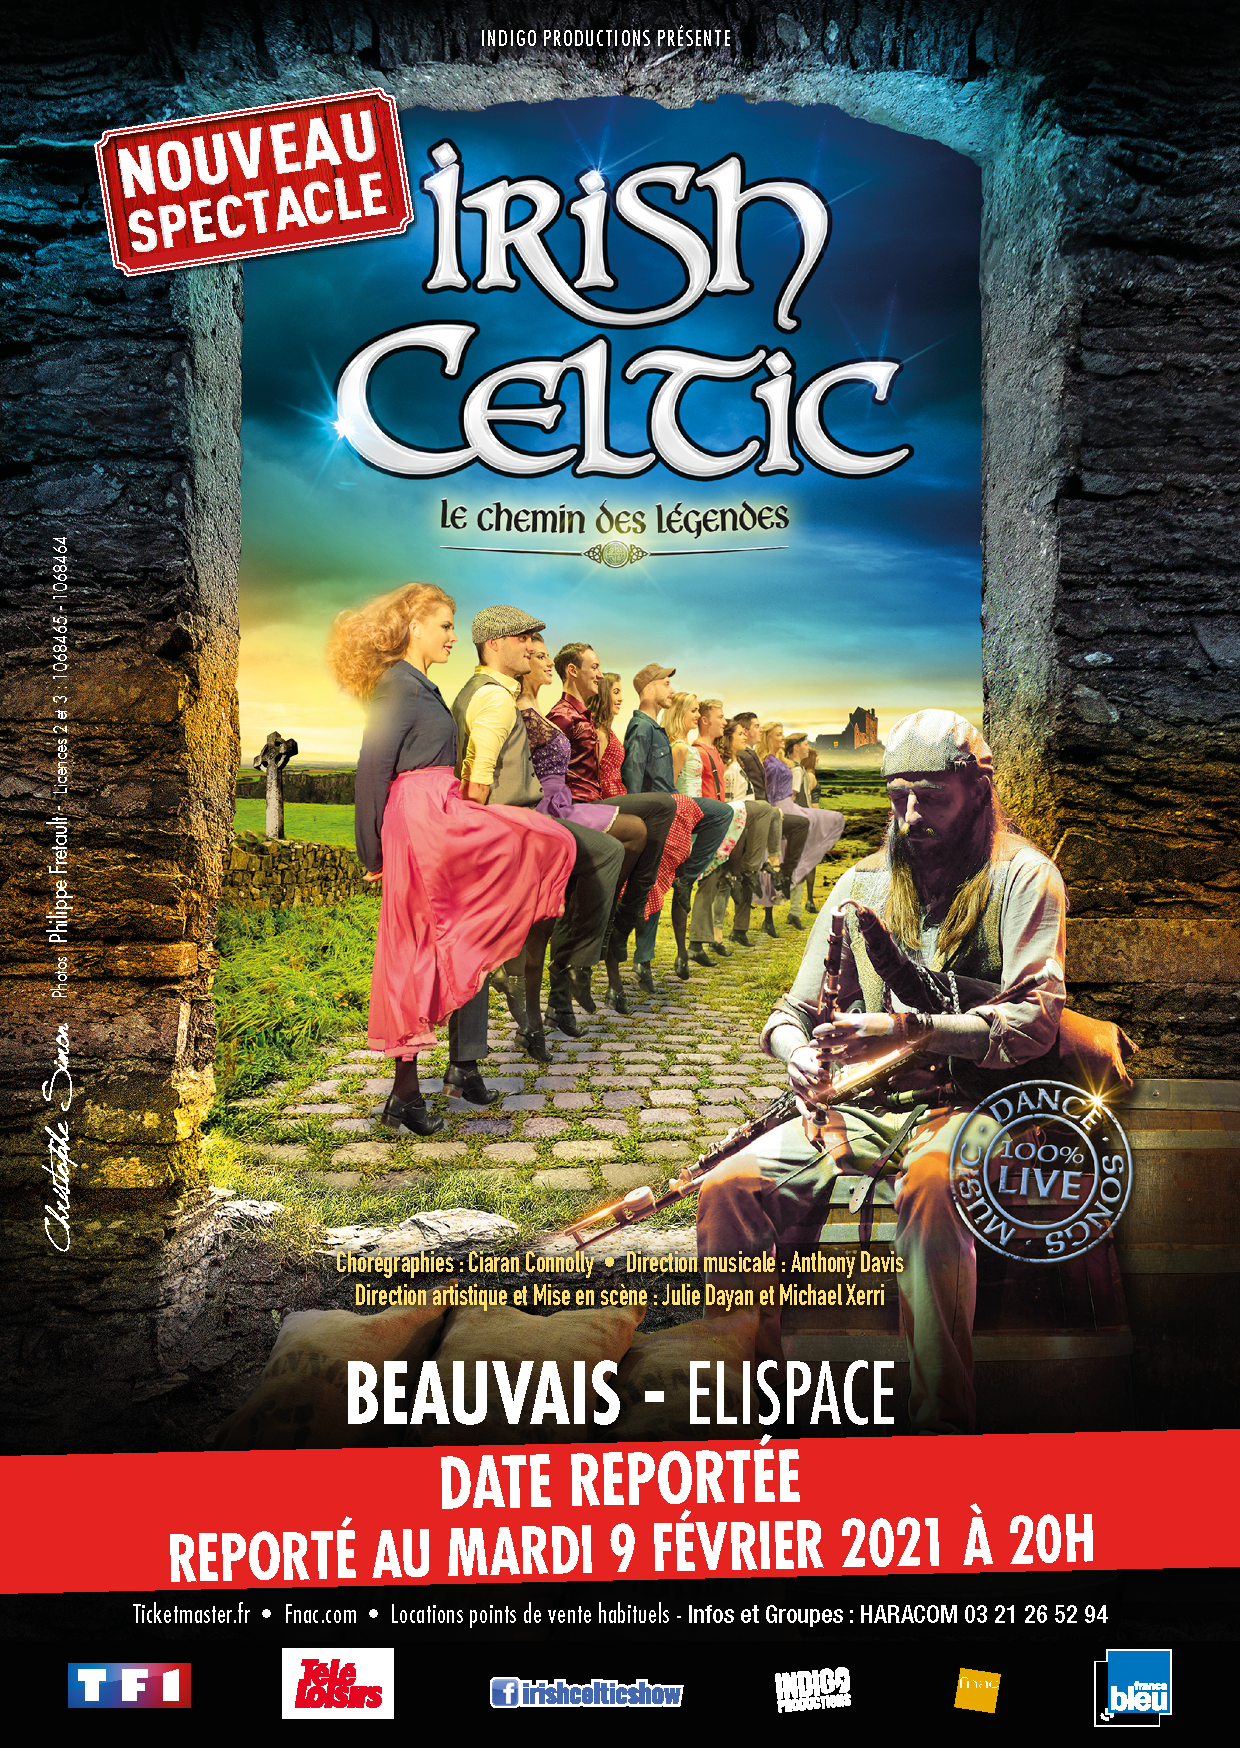 Irish Celtic Le Chemin des Légendes, crédit photo : Indigo Productions